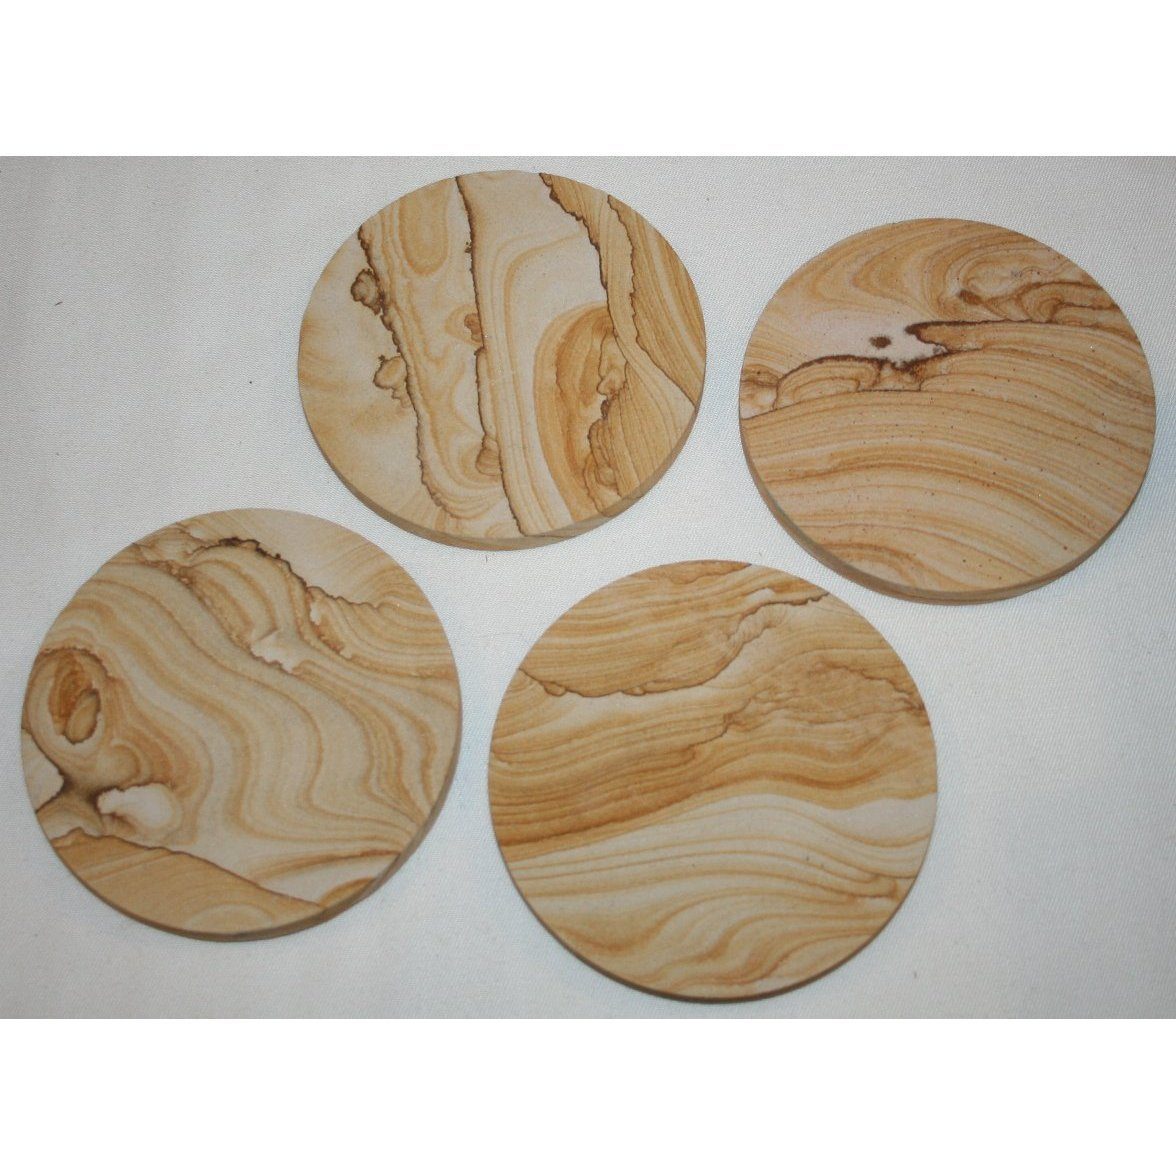 Natural sandstone coasters set of 4 ebay - Stone absorbent coasters ...